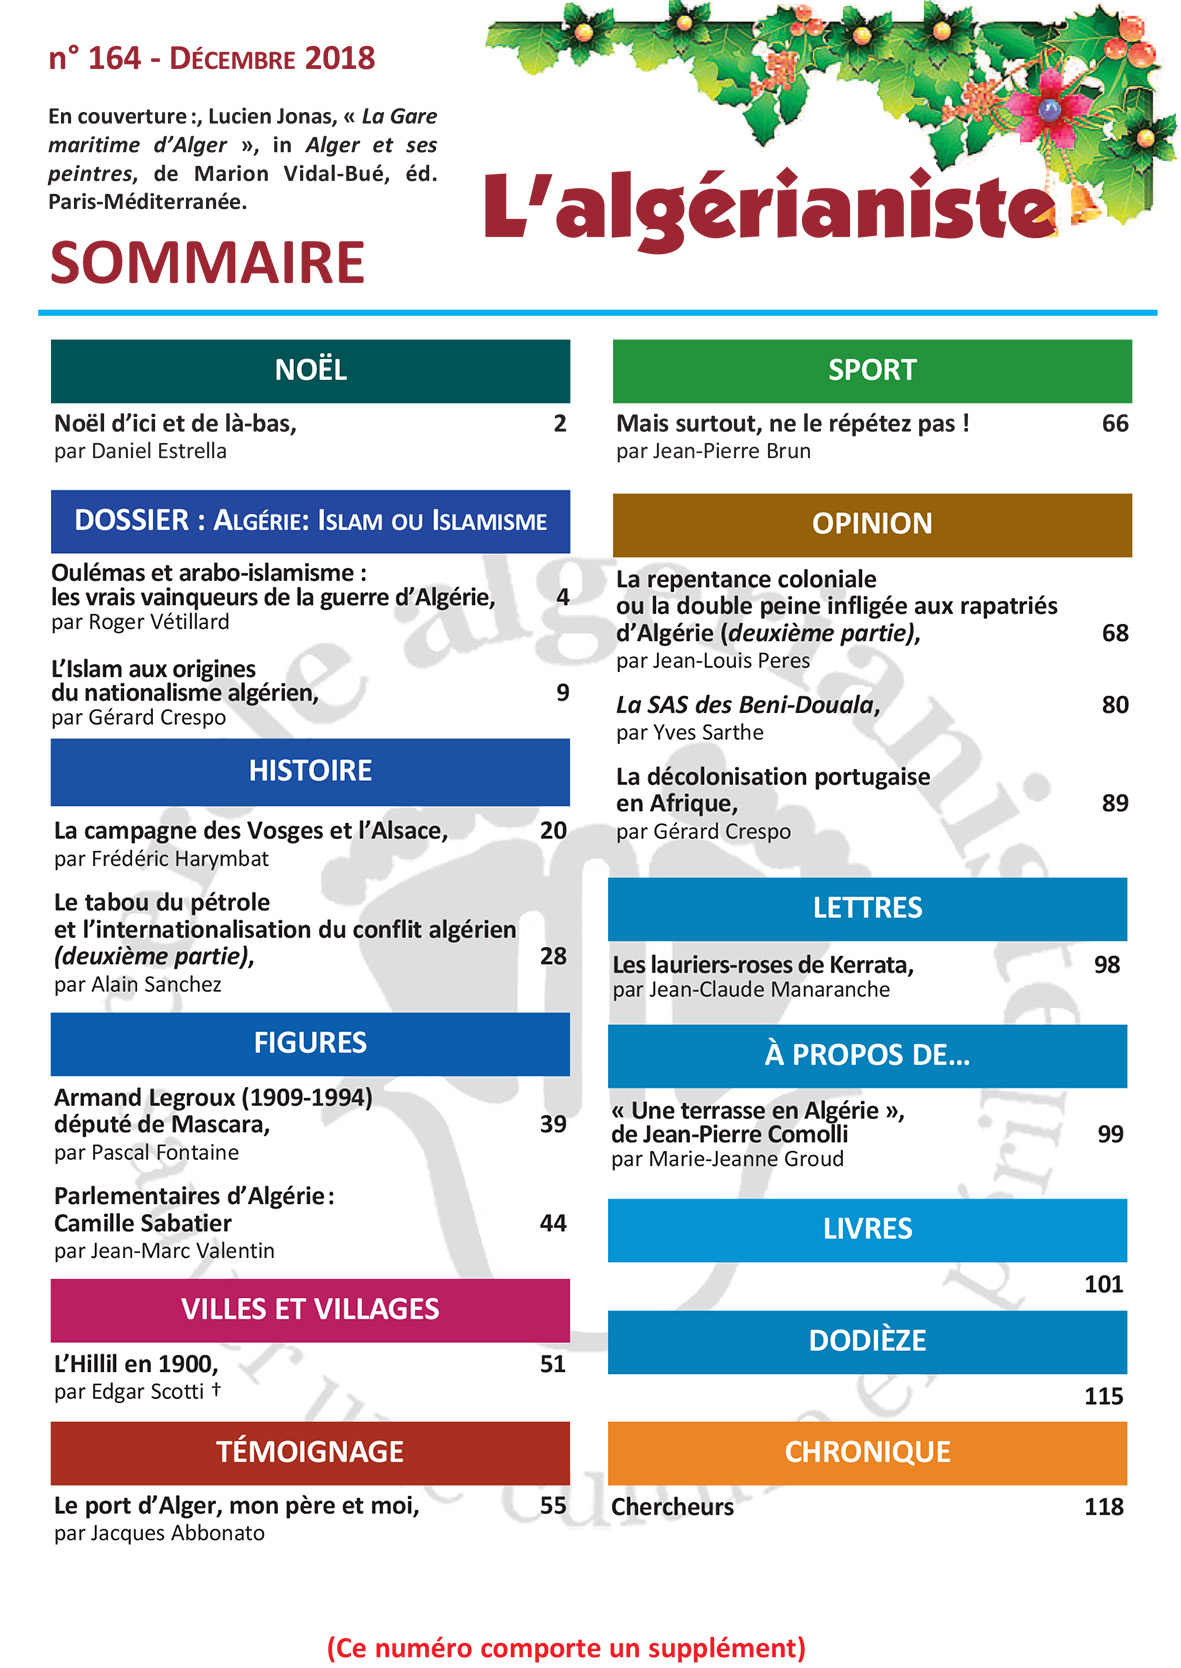 164 Sommaire